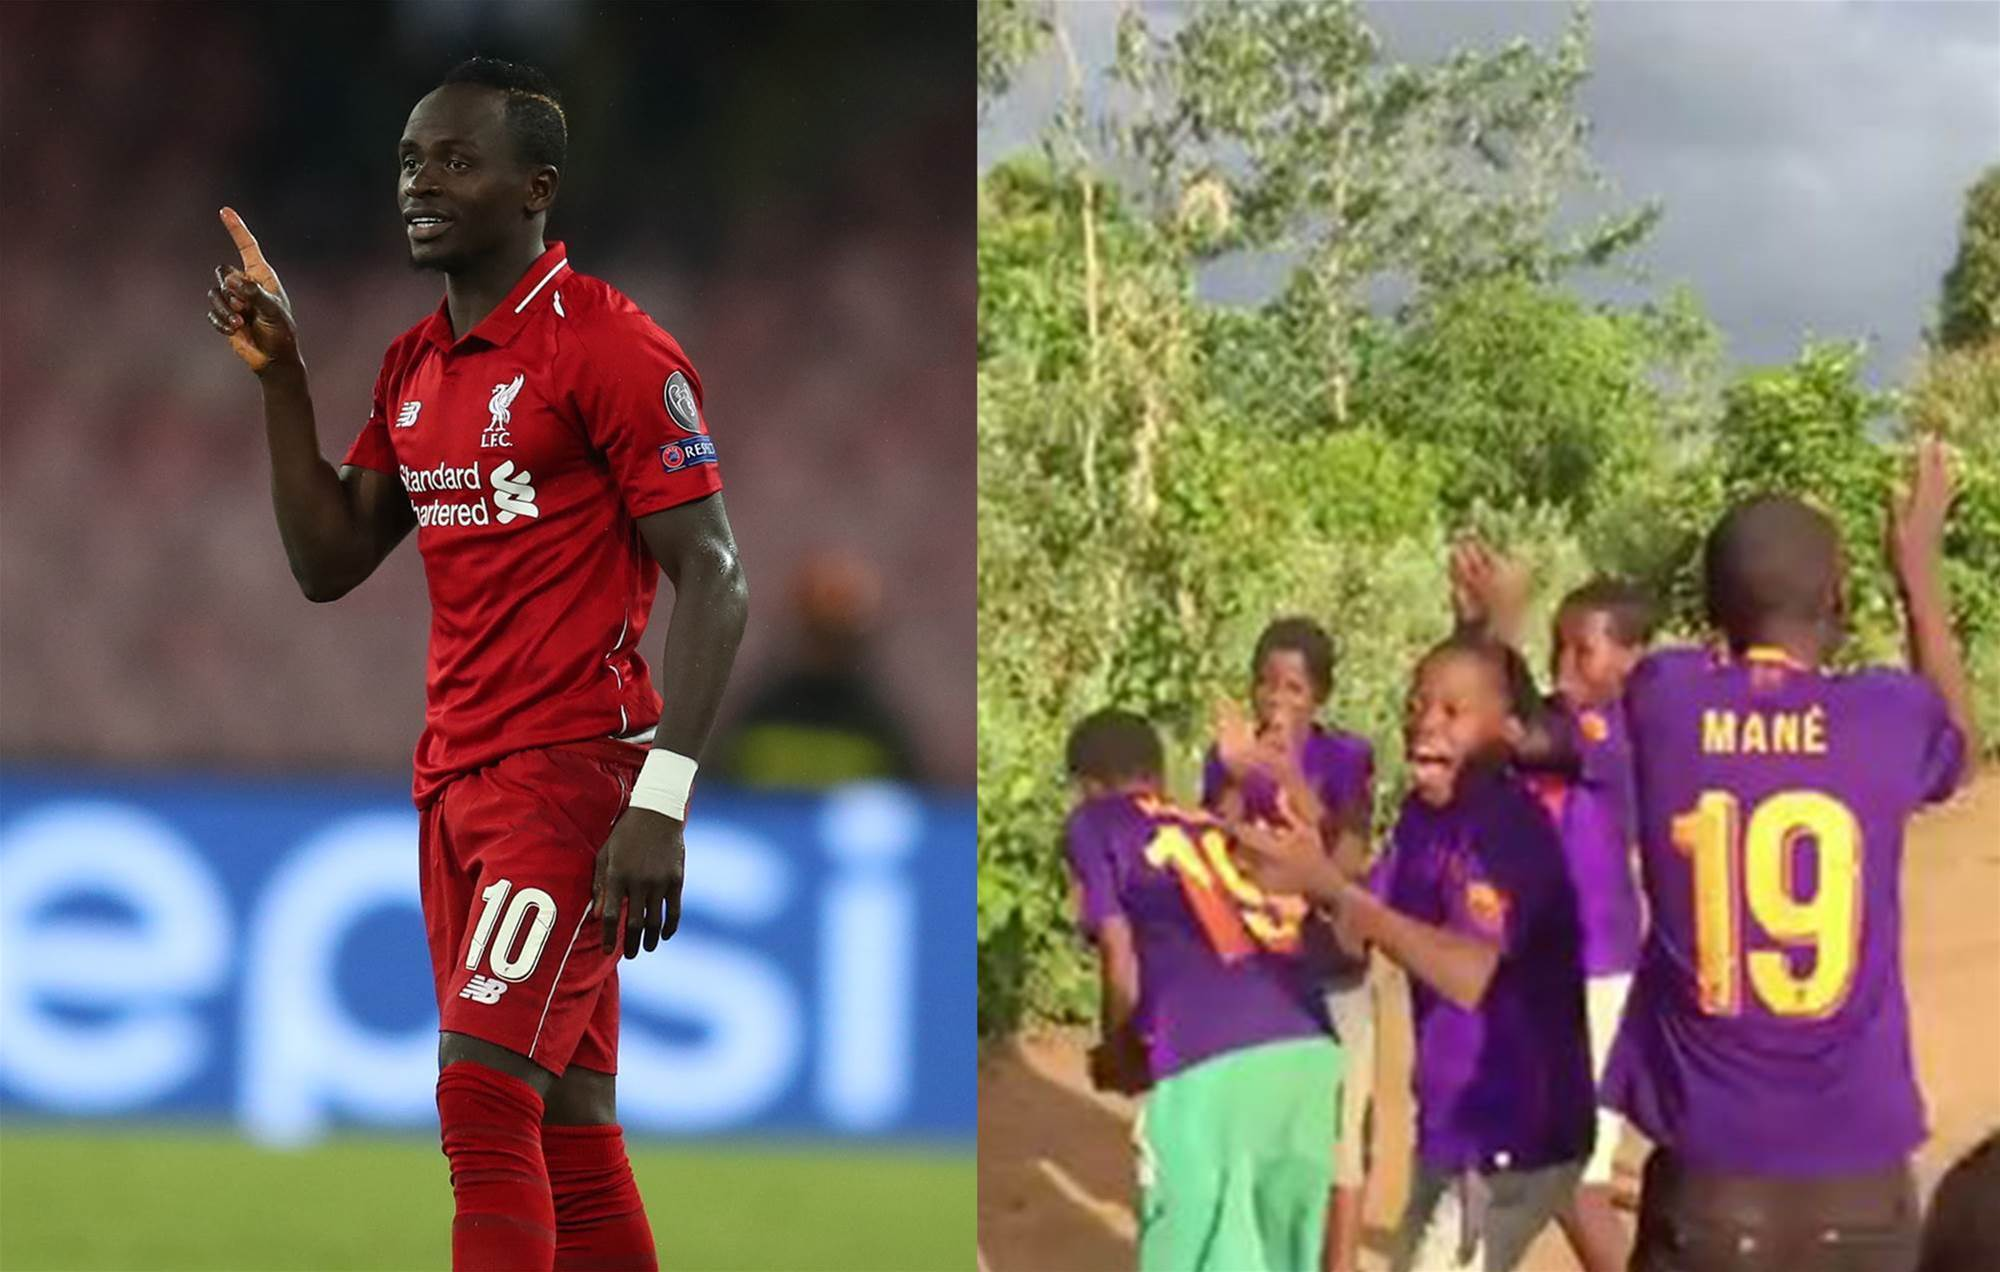 Sadio Mane's incredible act of generosity